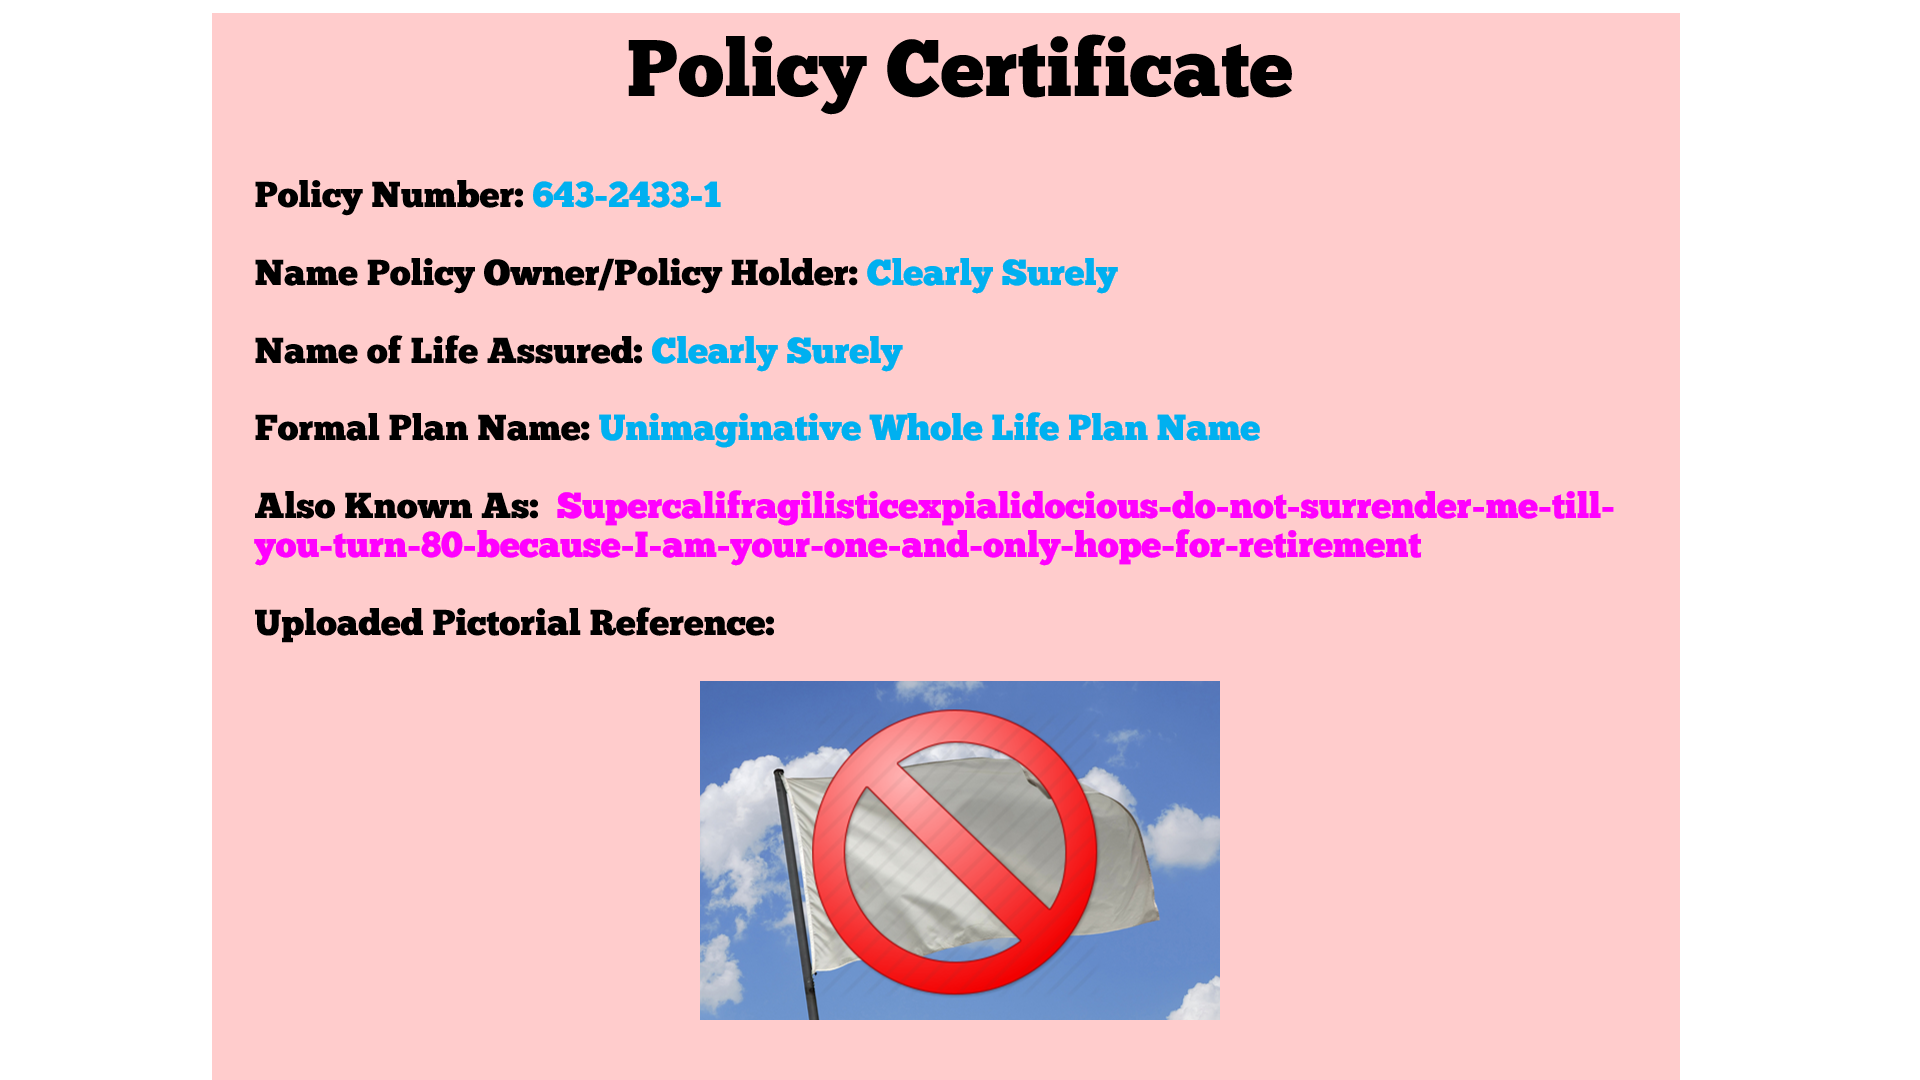 Policy Certificate Final2